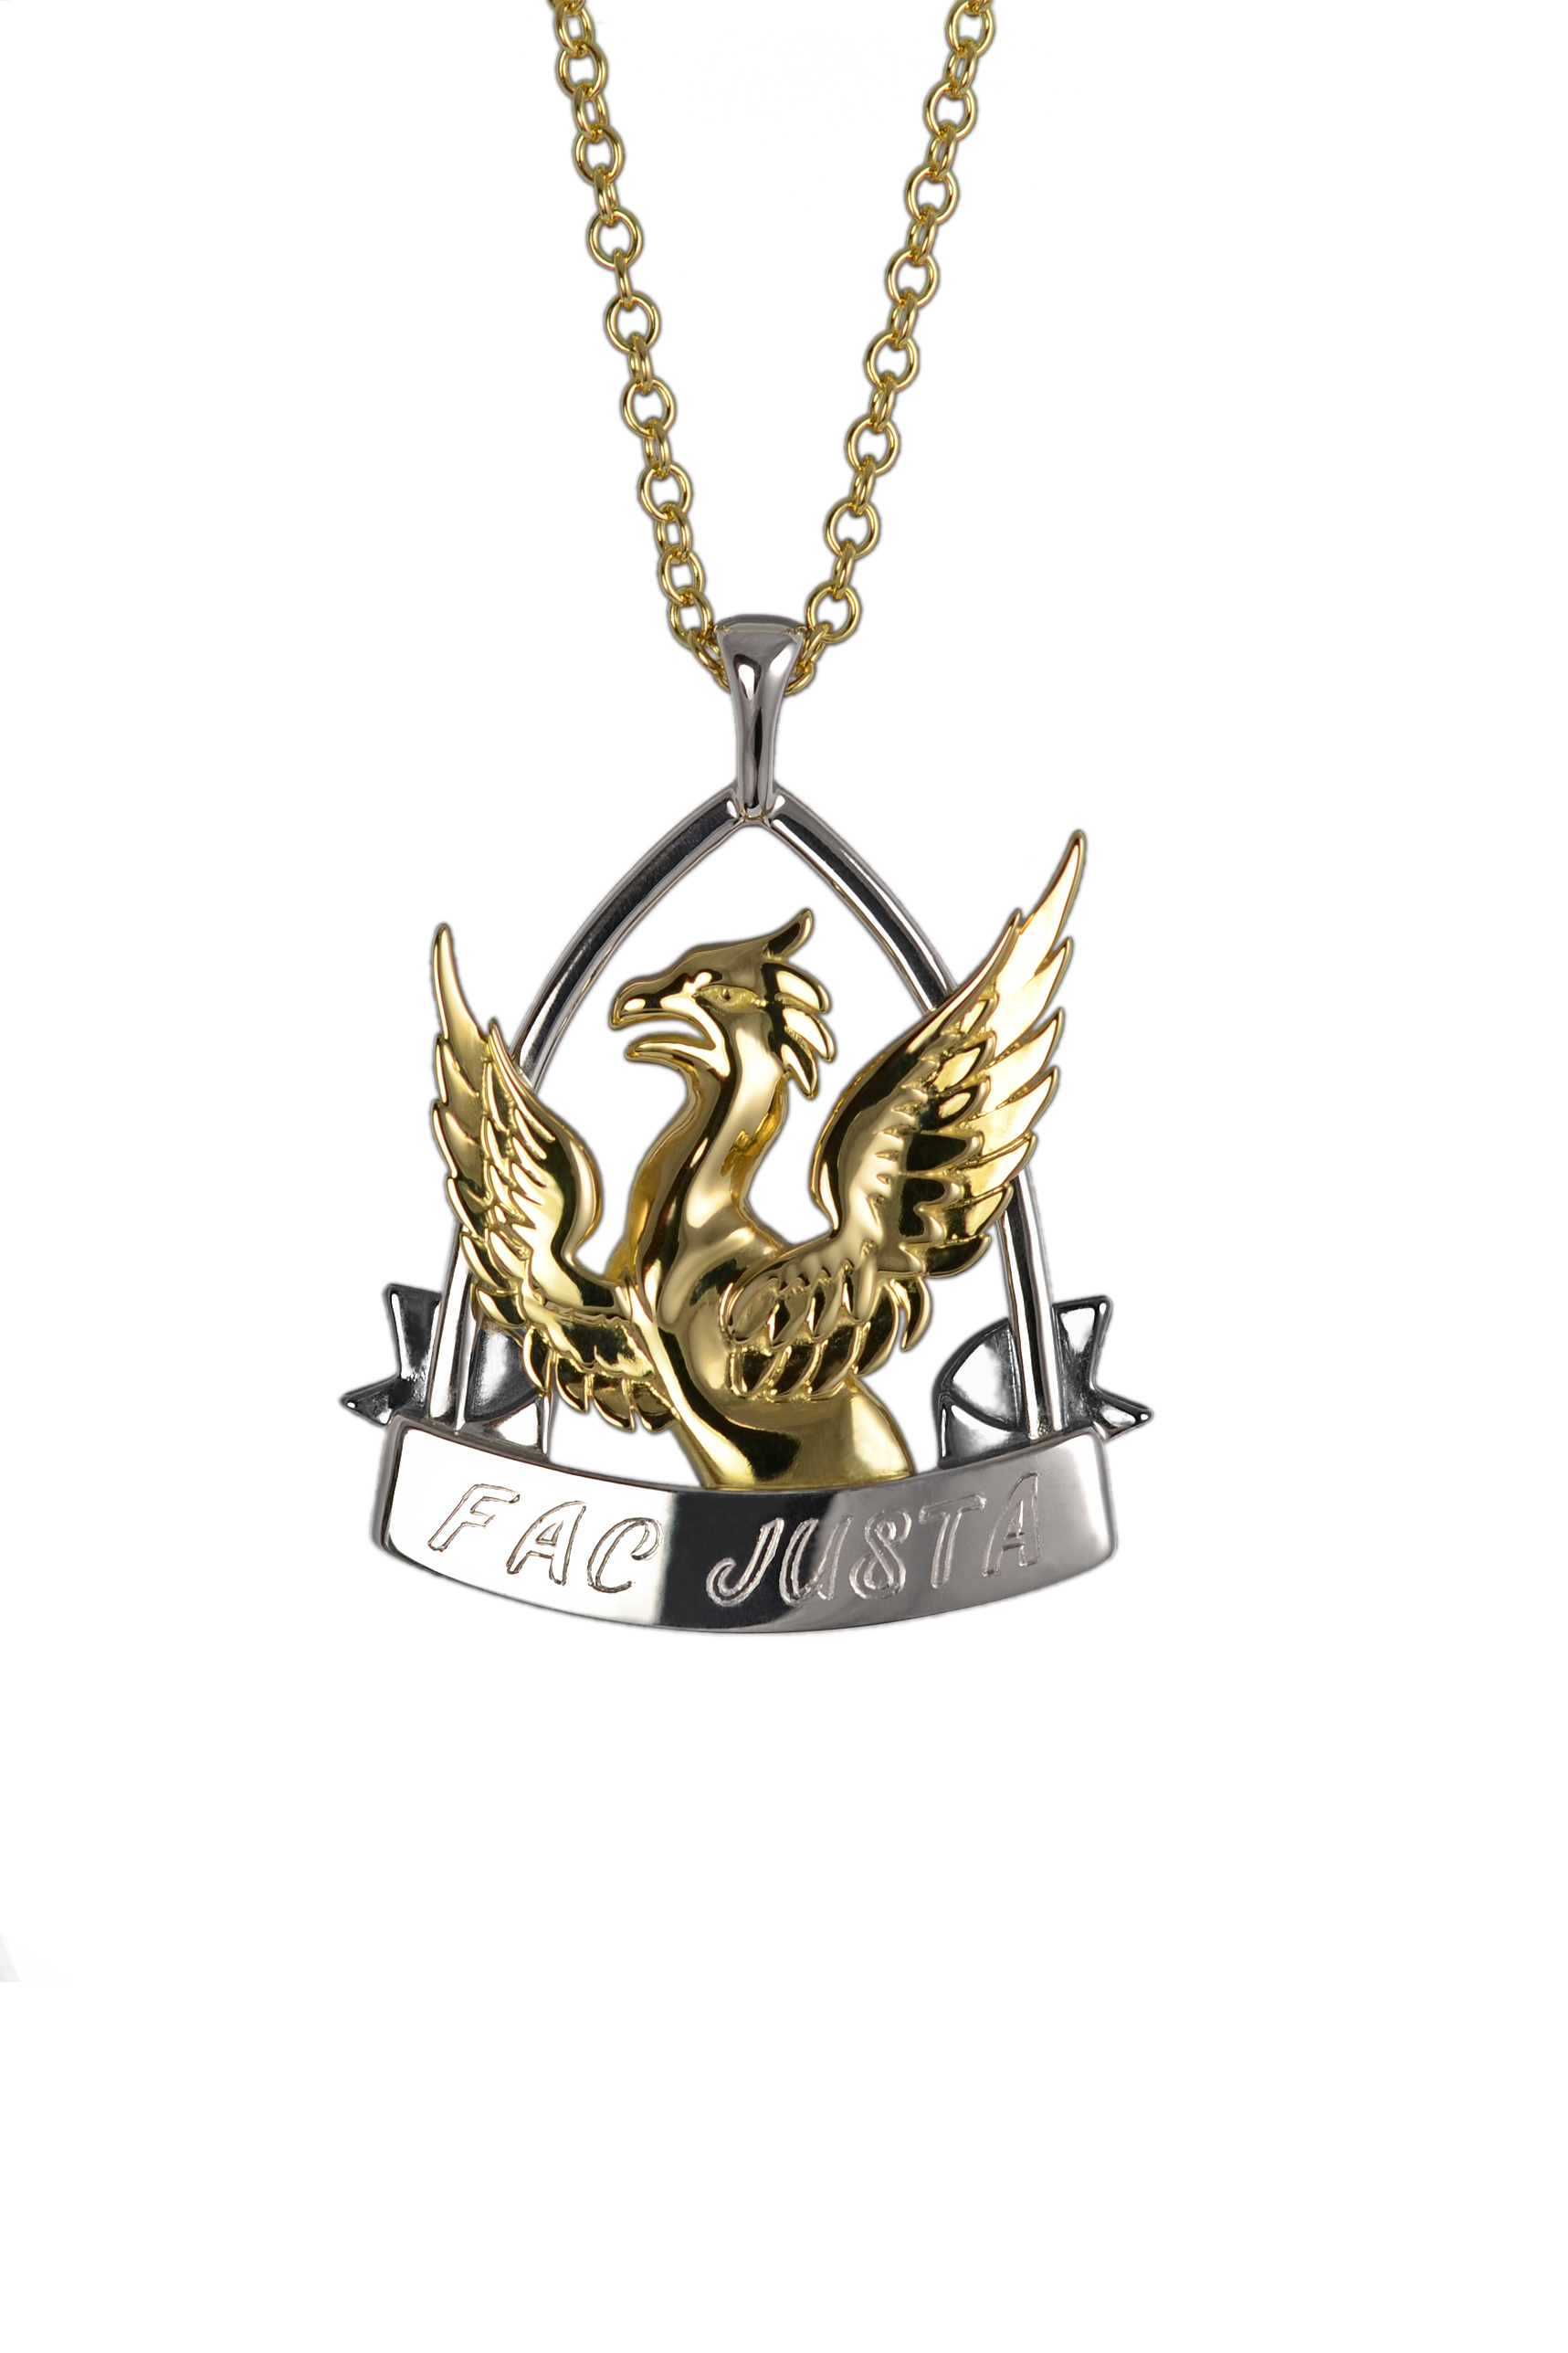 Family crest commission pendant